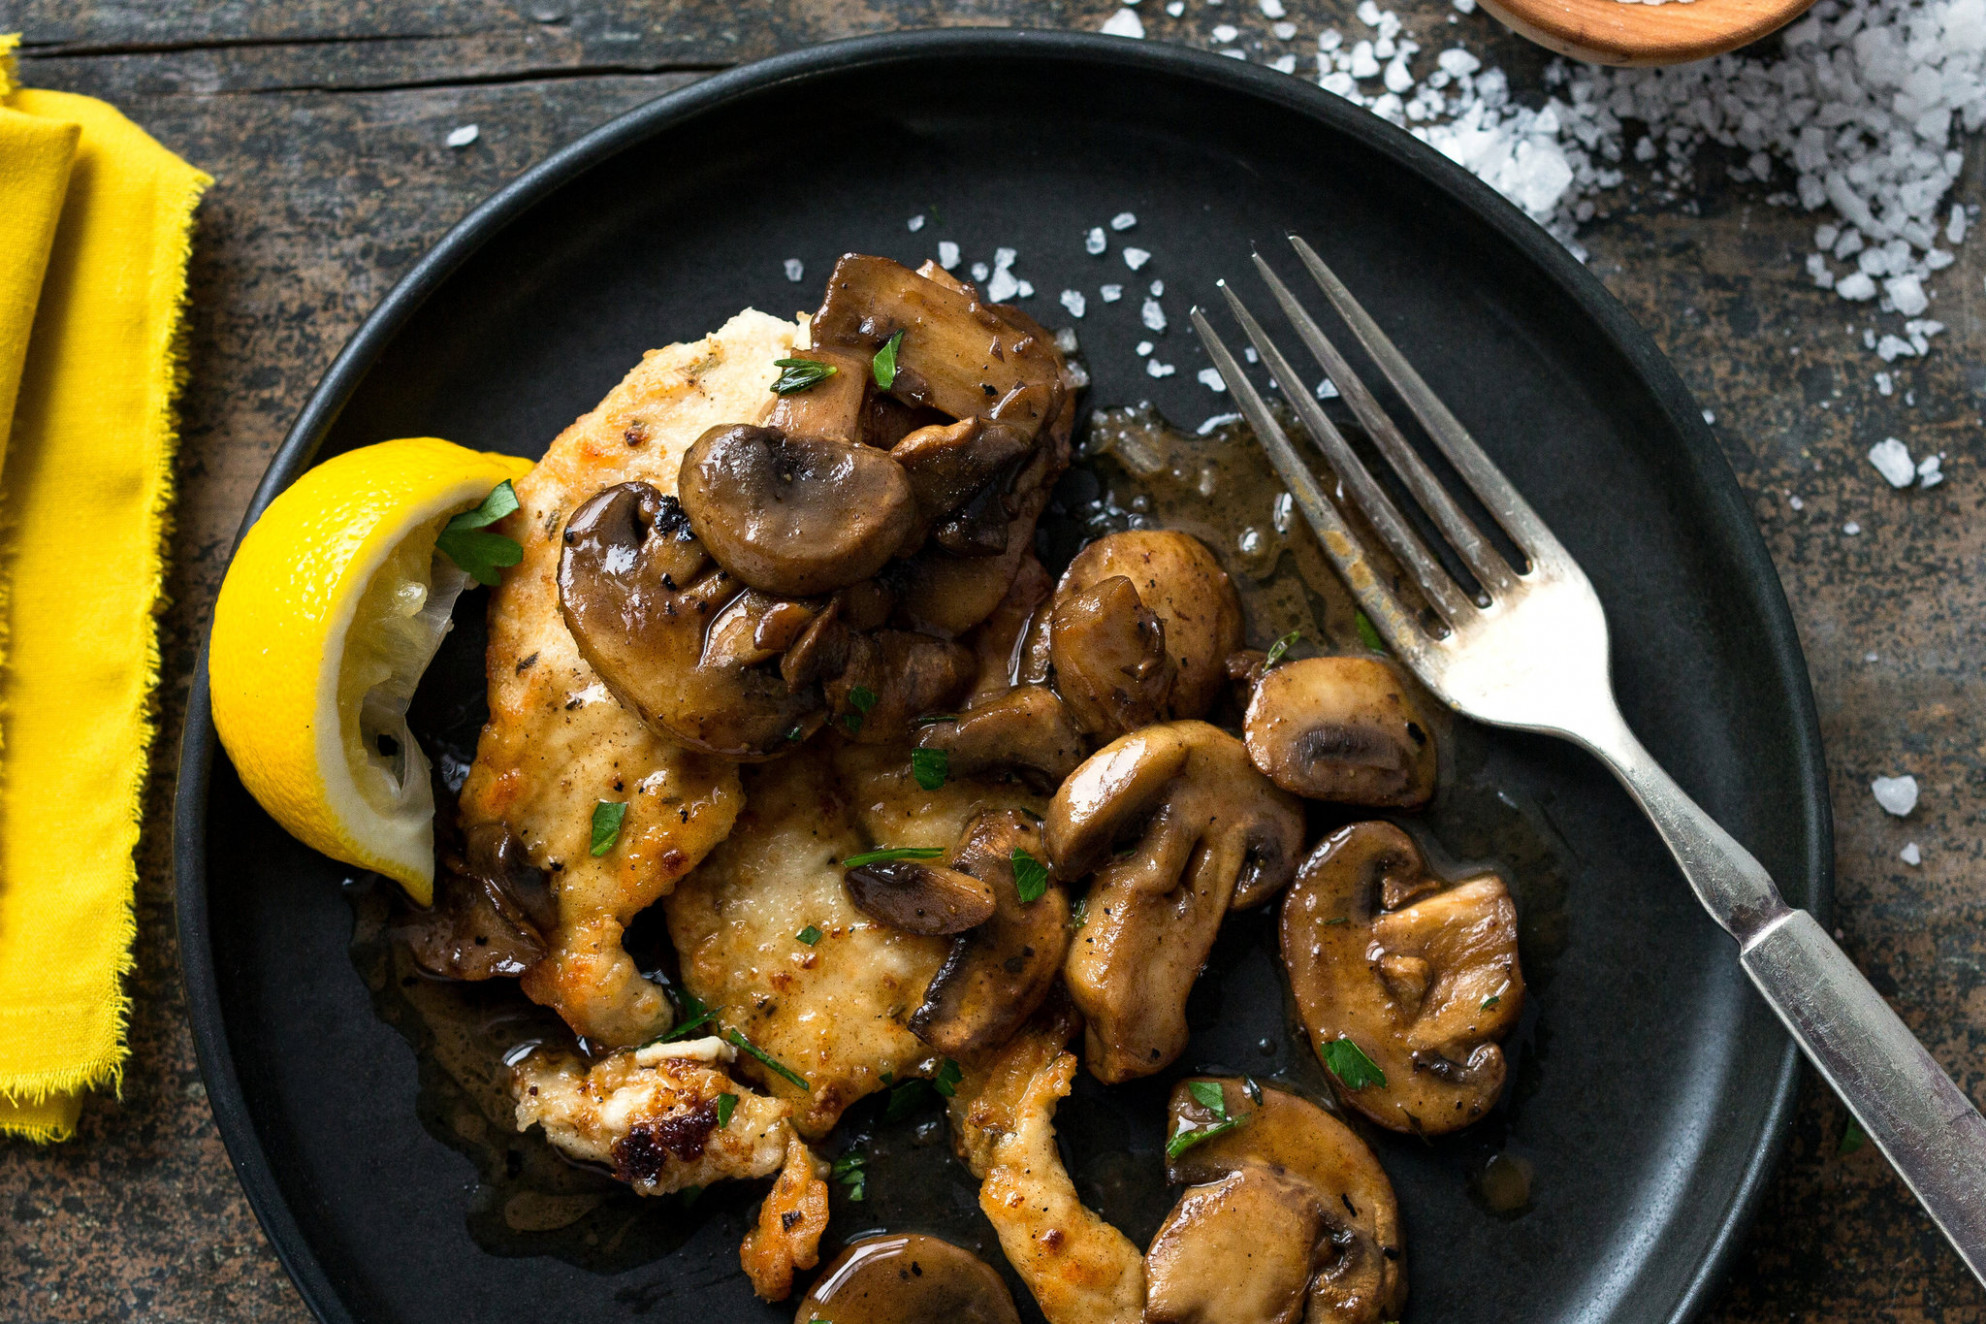 40 Healthy Chicken Recipes For The Entire Family - healthy recipes with mushrooms